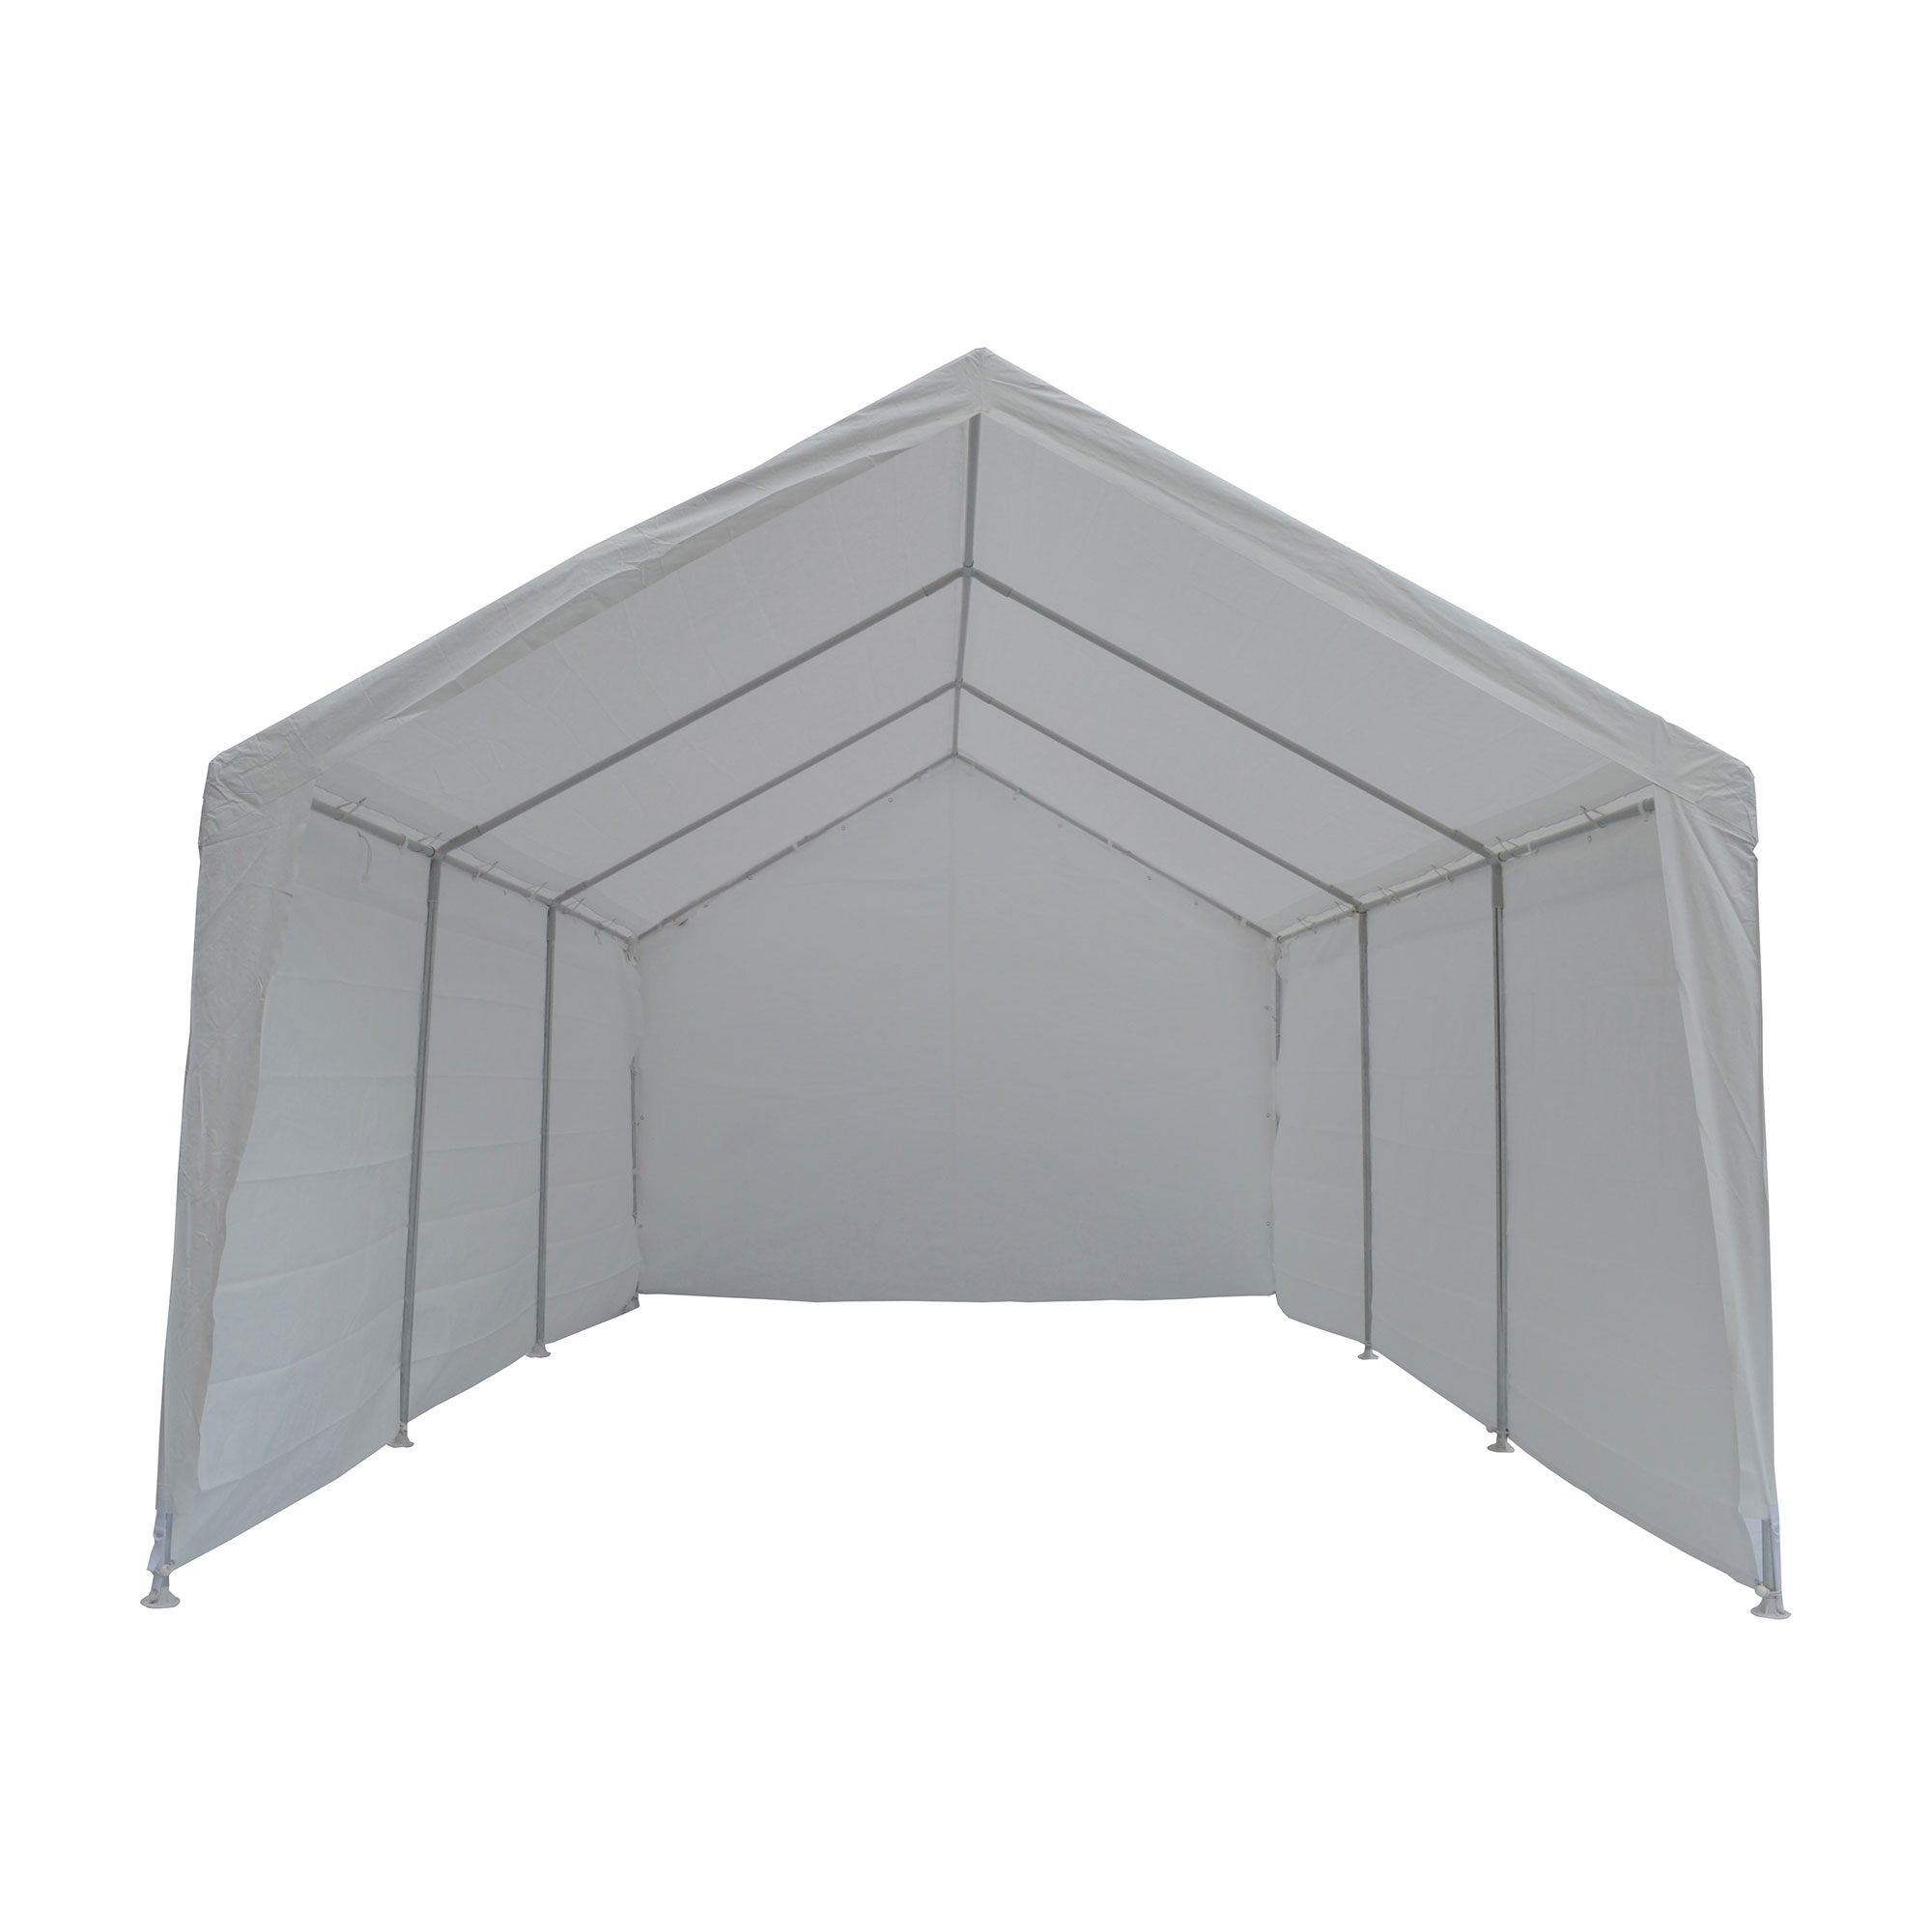 True Shelter 10 X 20 Car Canopy Gazebo Tent Cover 8 Legs Steel